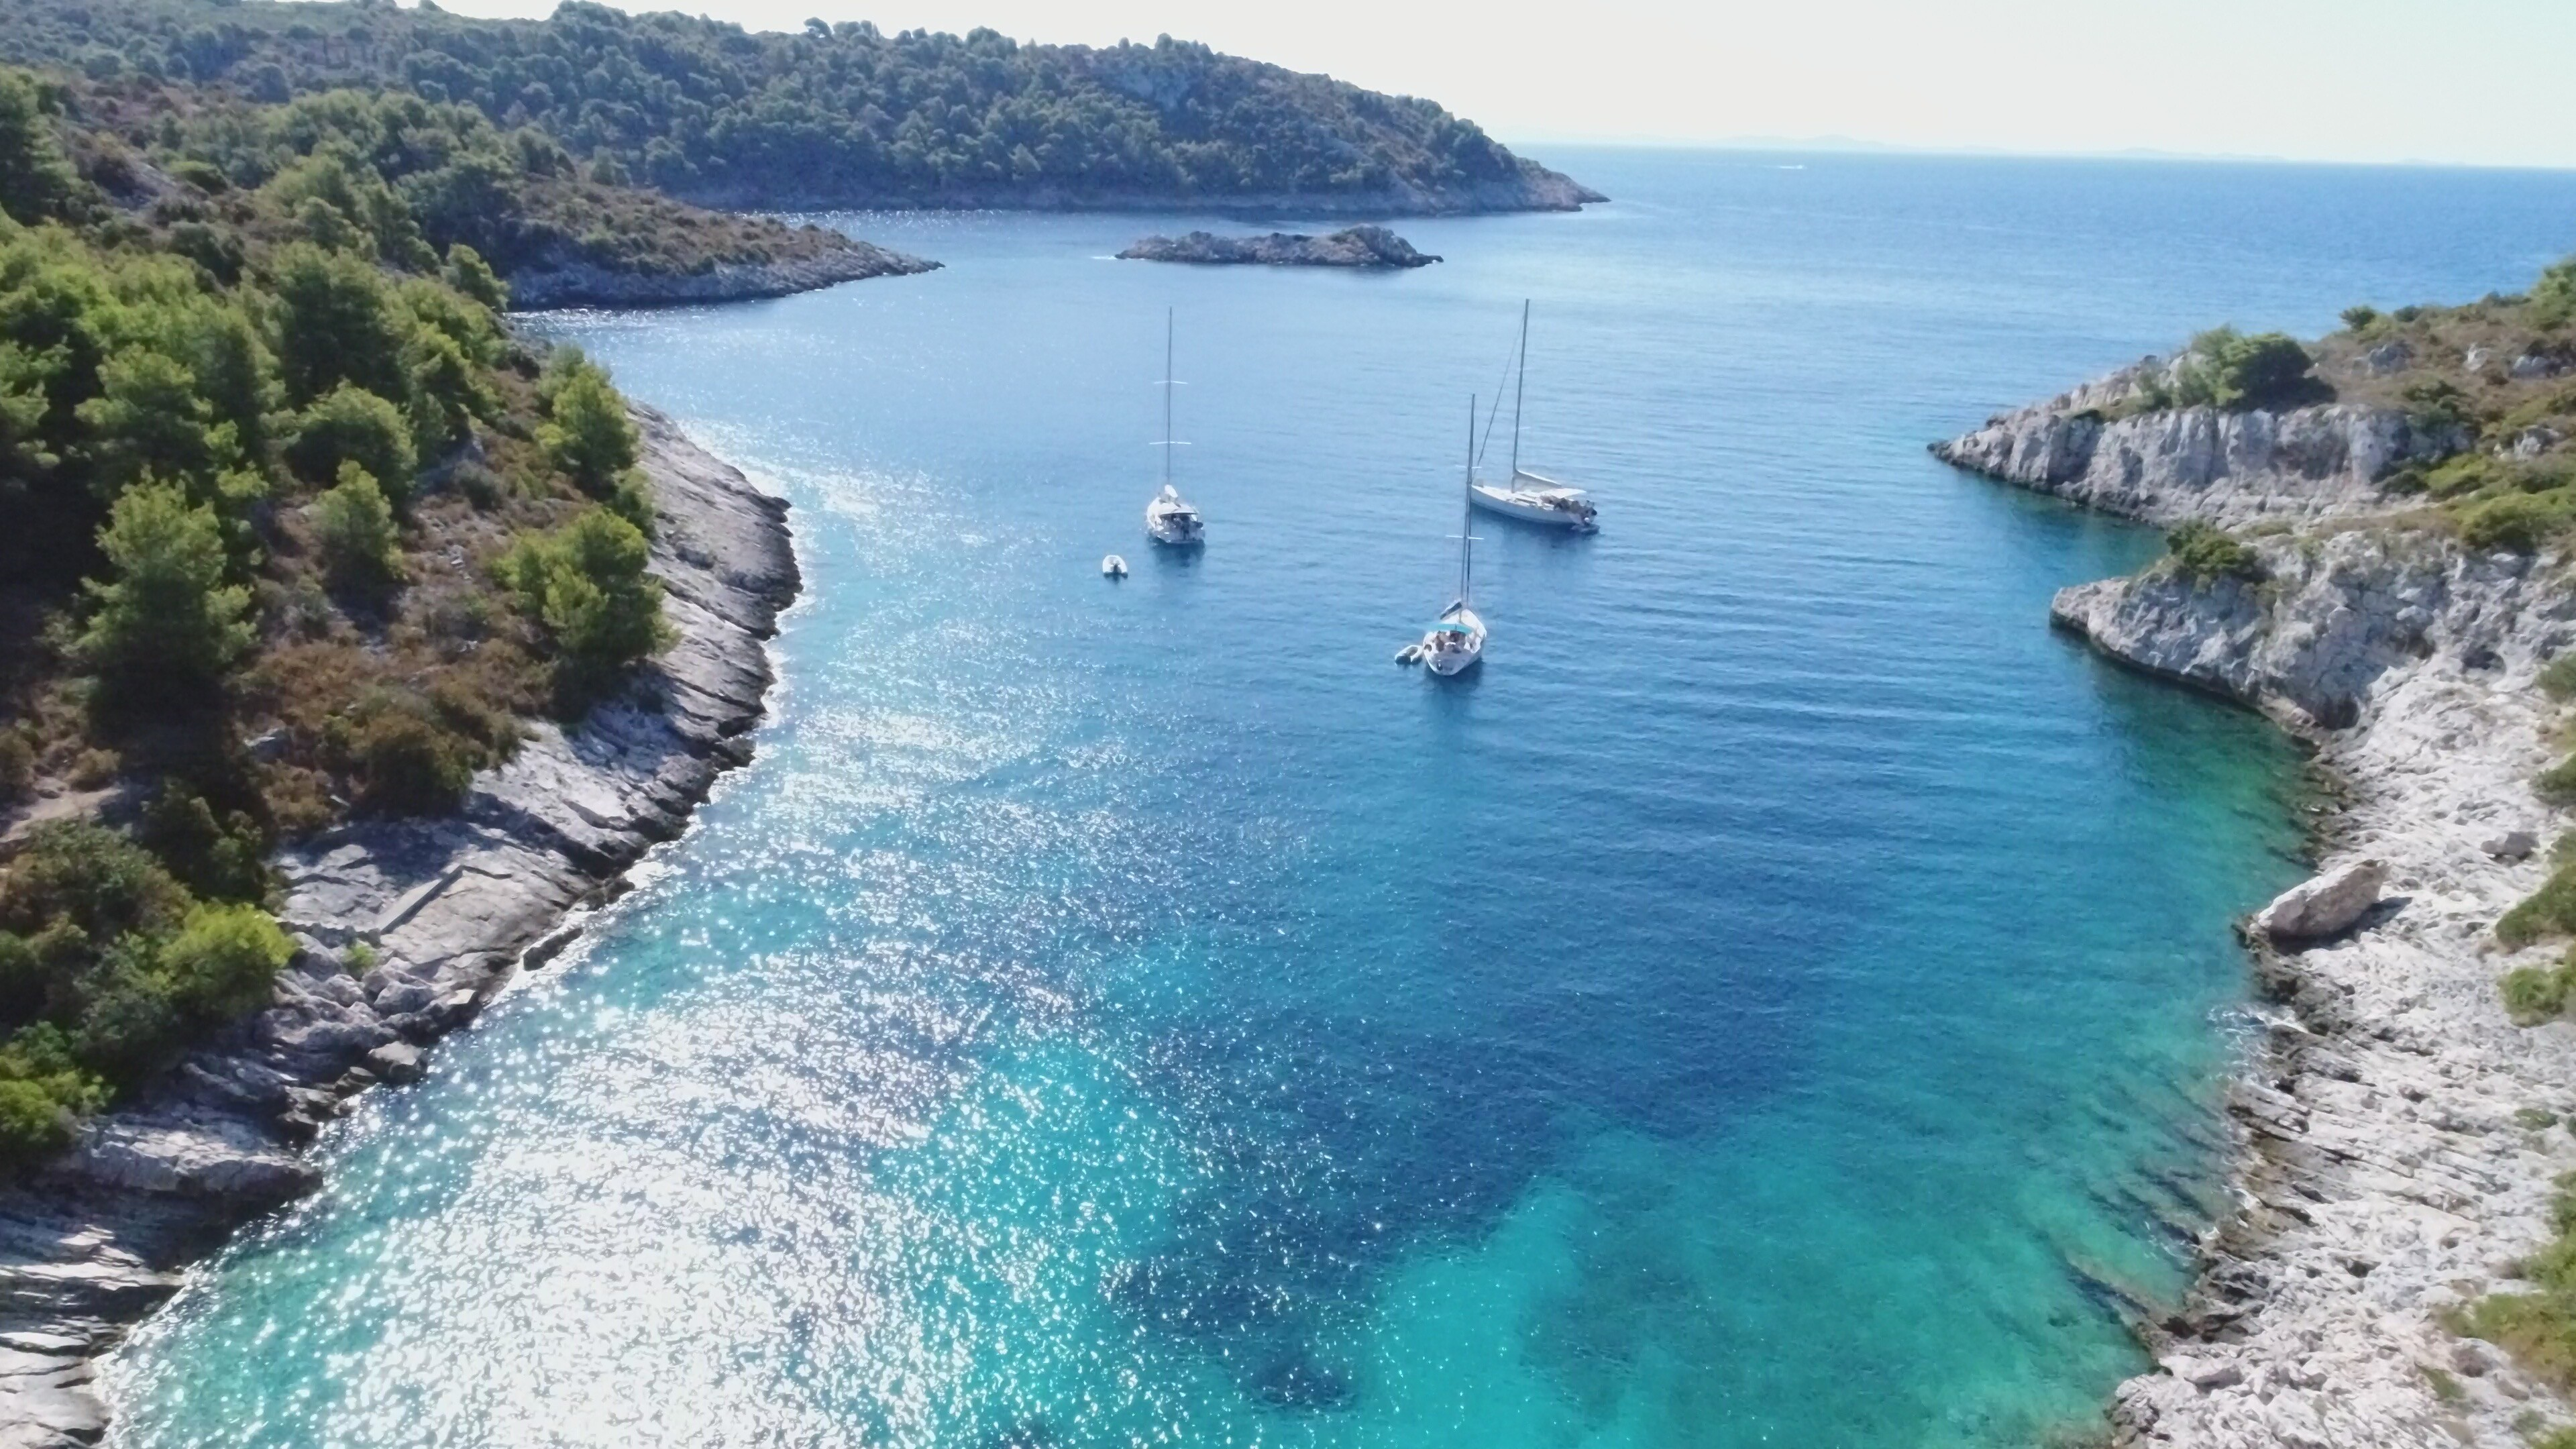 7 must see places during your sailing trip in Croatia